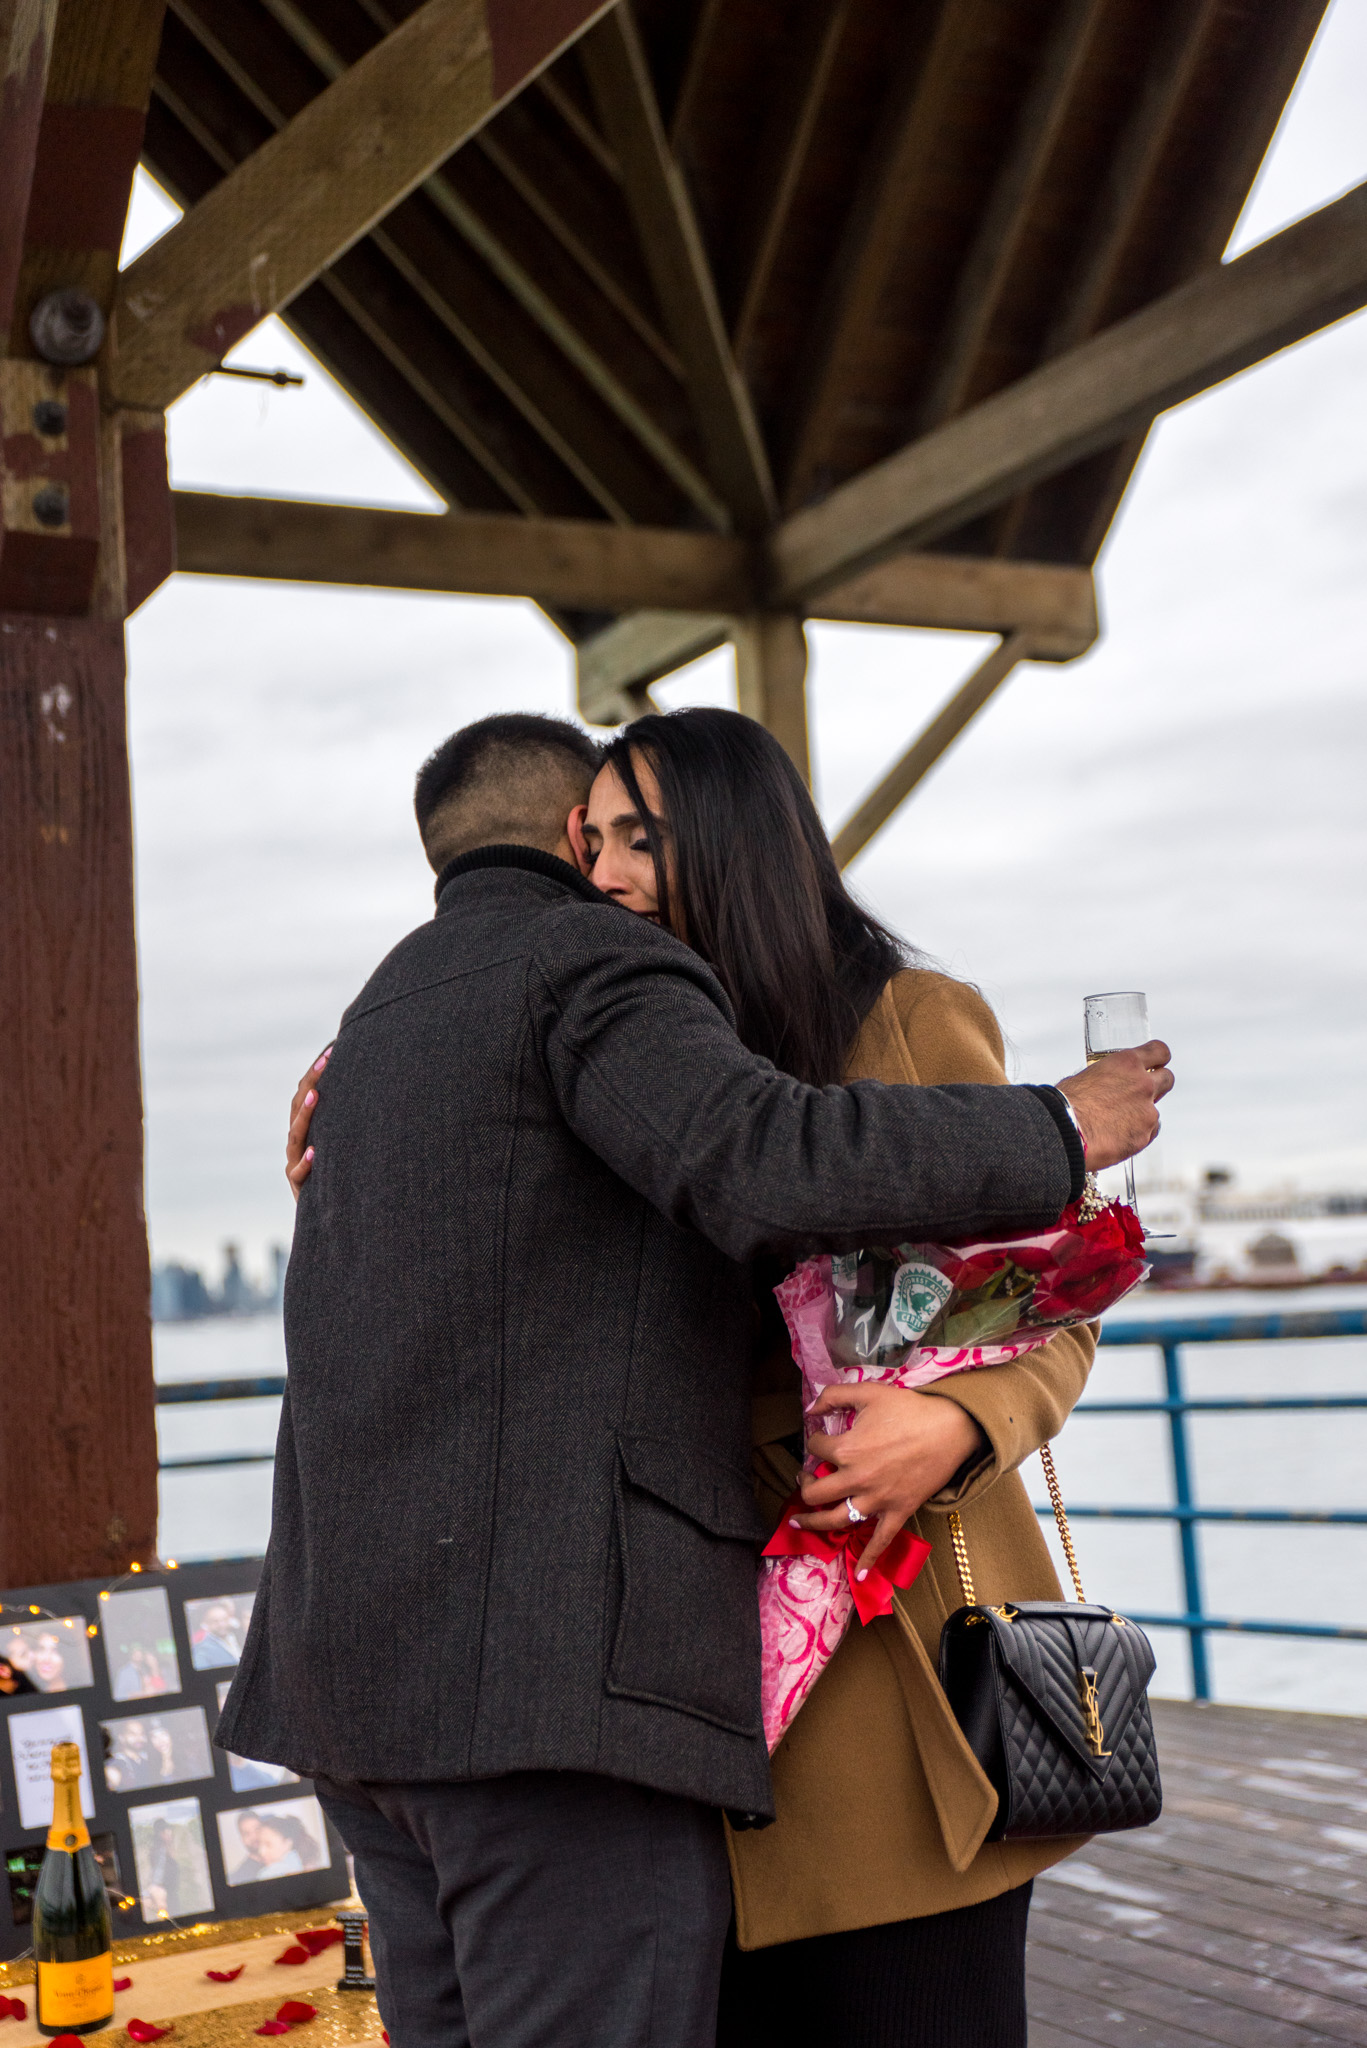 Lonsdale Quay Proposal Photographer-41.JPG